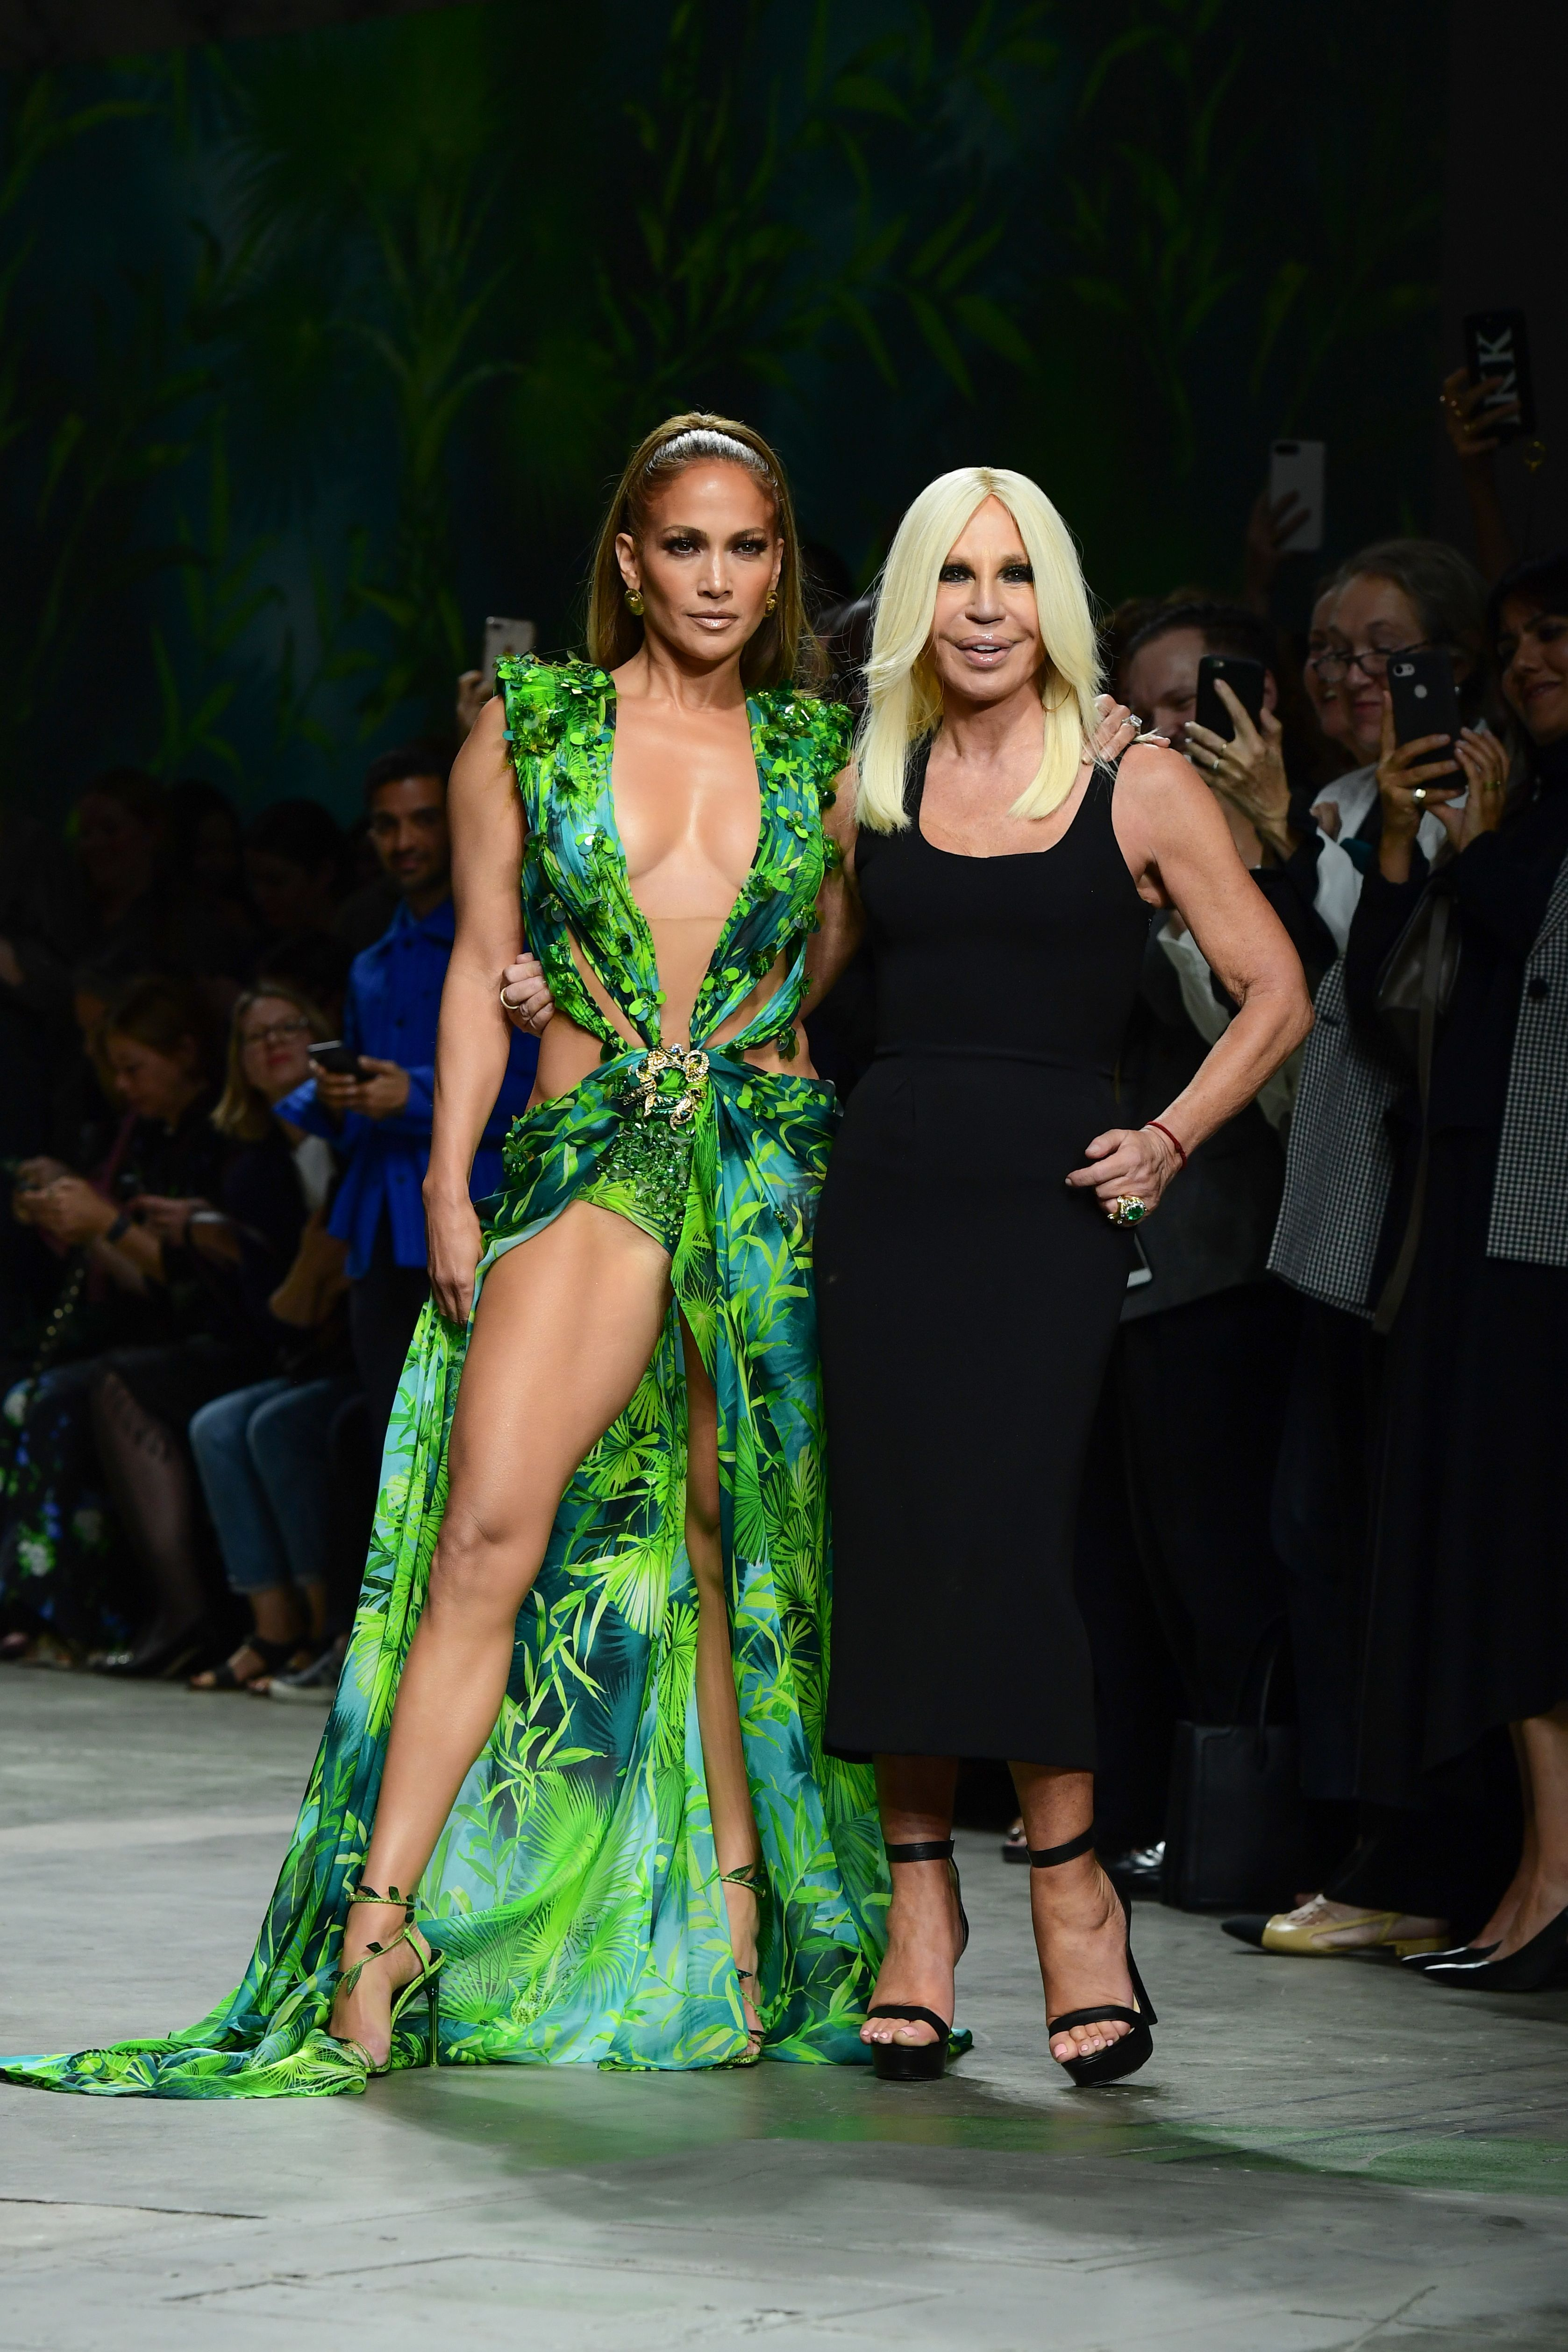 Italian fashion designer Donatella Versace (R) and US singer Jennifer Lopez pose following the presentation of Versace's Women's Spring Summer 2020 collection in Milan on September 20, 2019. (Photo by Miguel MEDINA / AFP)        (Photo credit should read MIGUEL MEDINA/AFP/Getty Images)